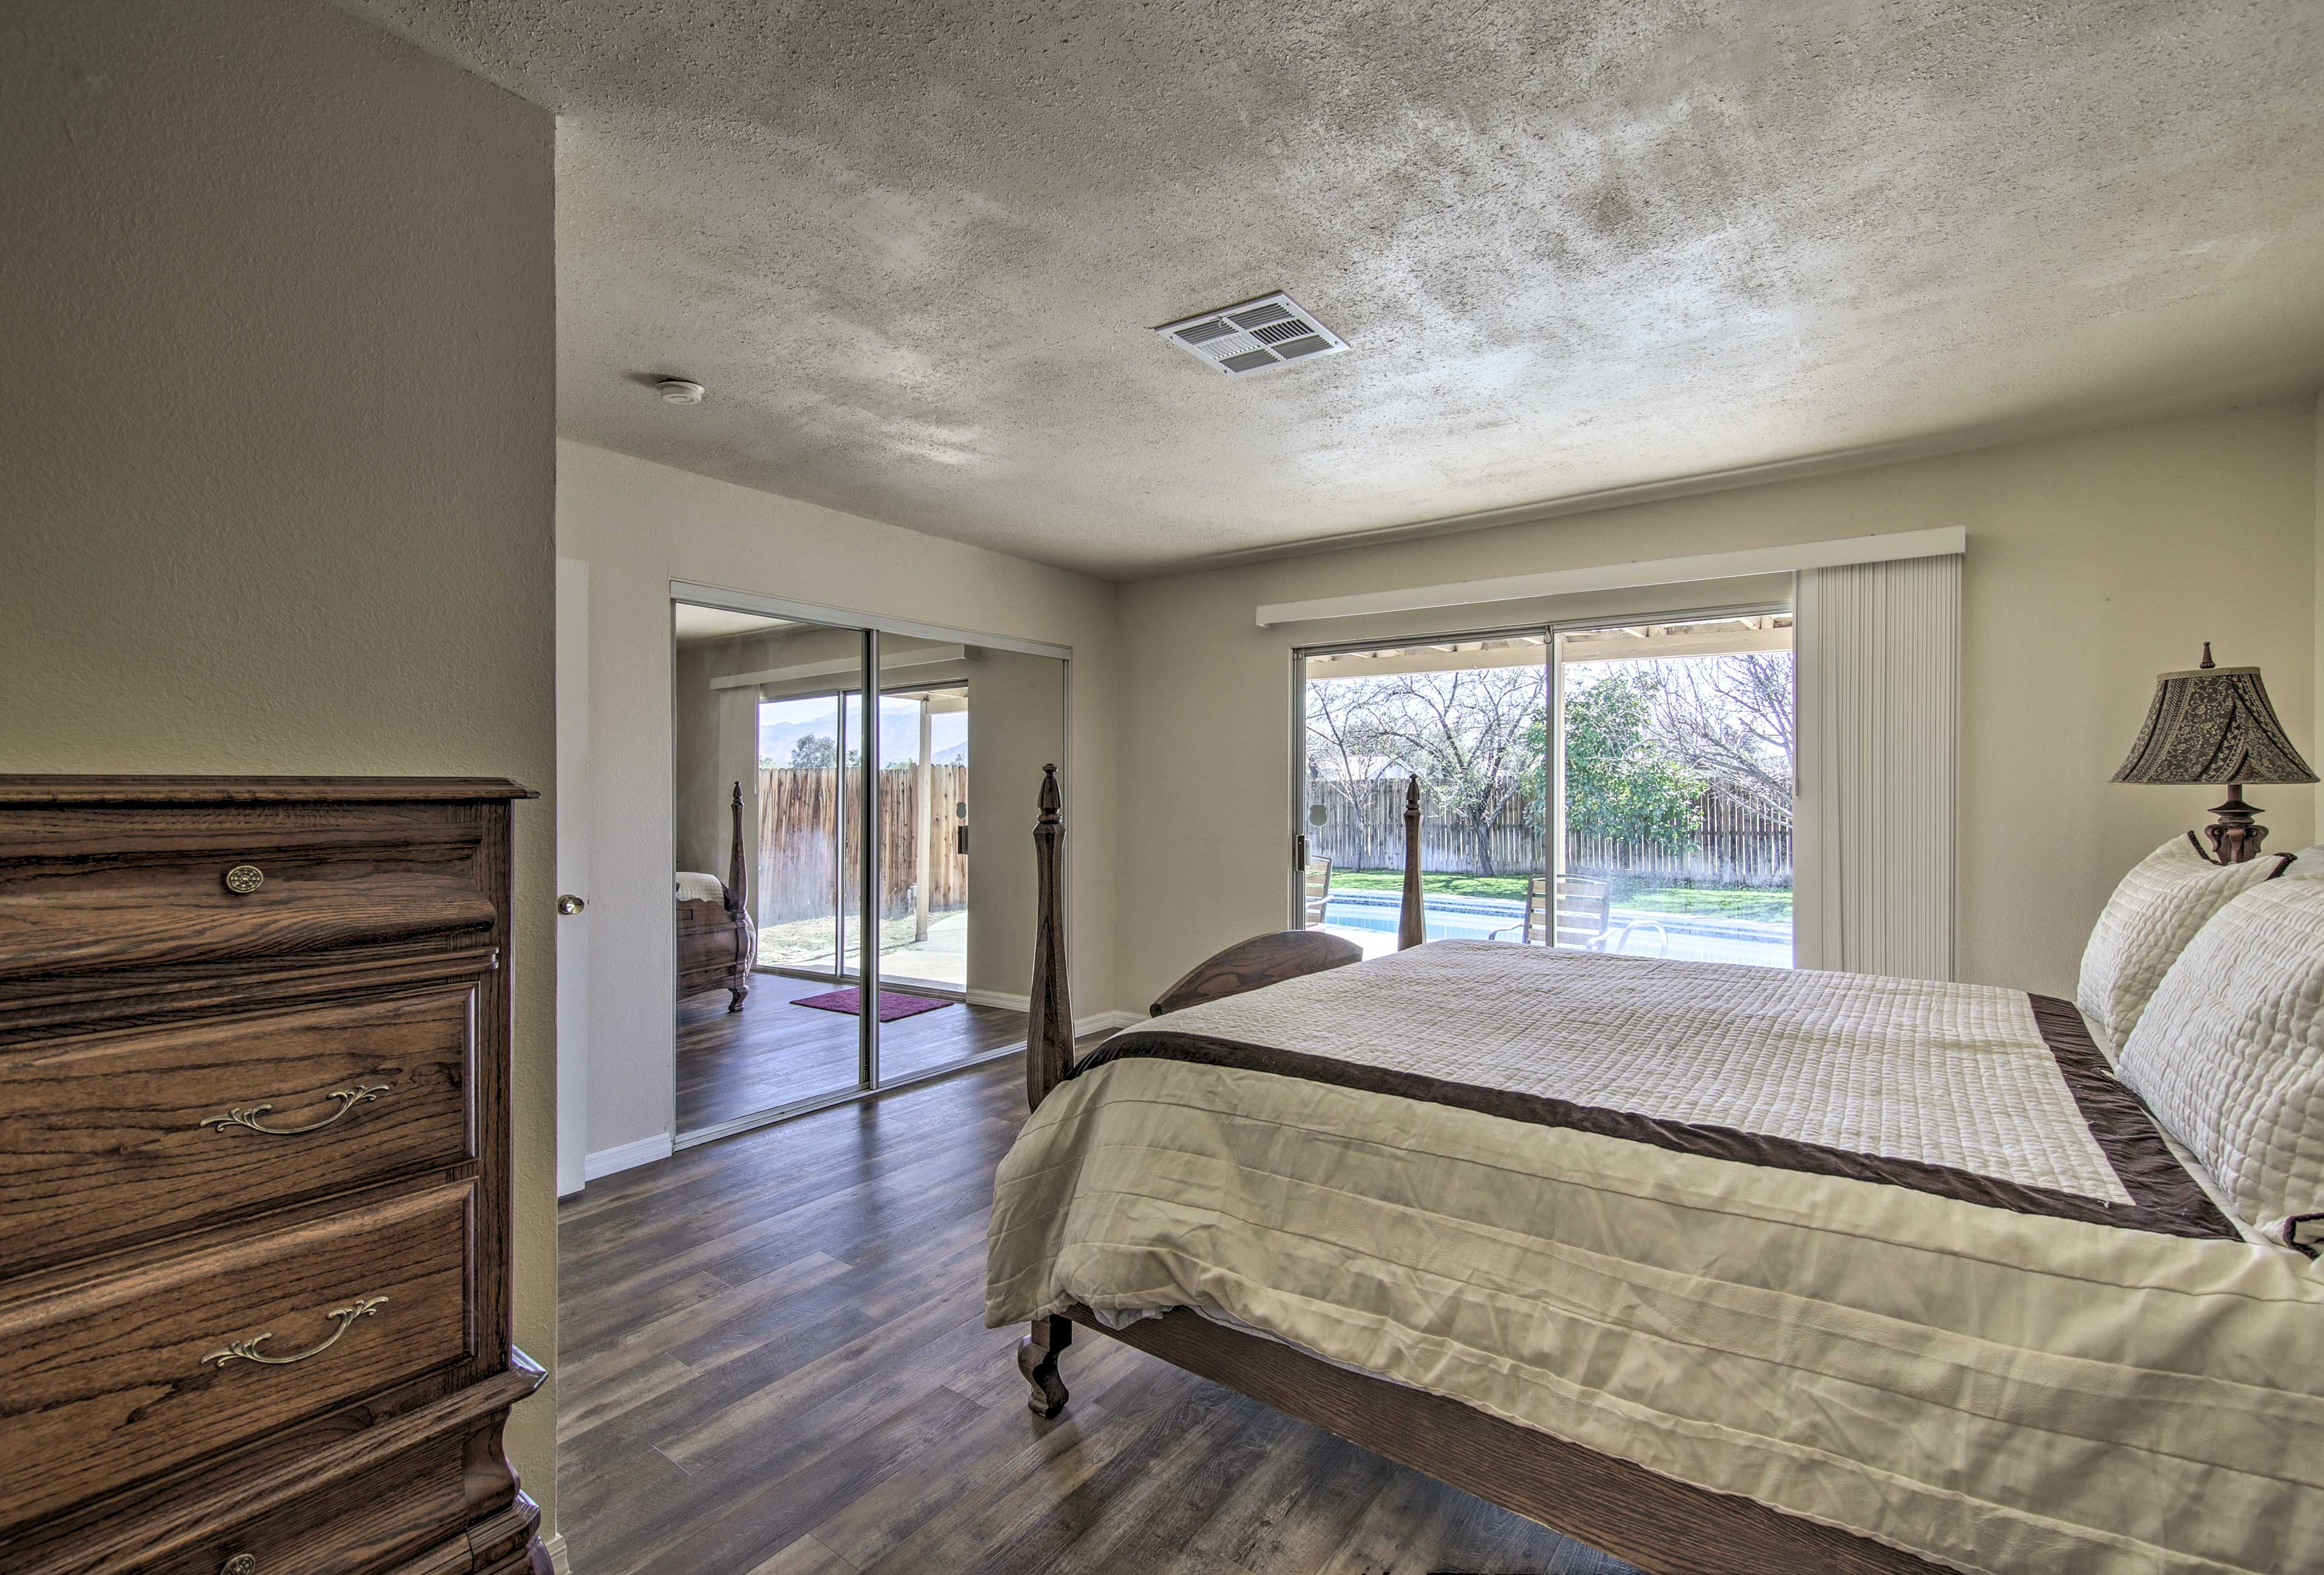 This bedroom grants direct access to the patio!